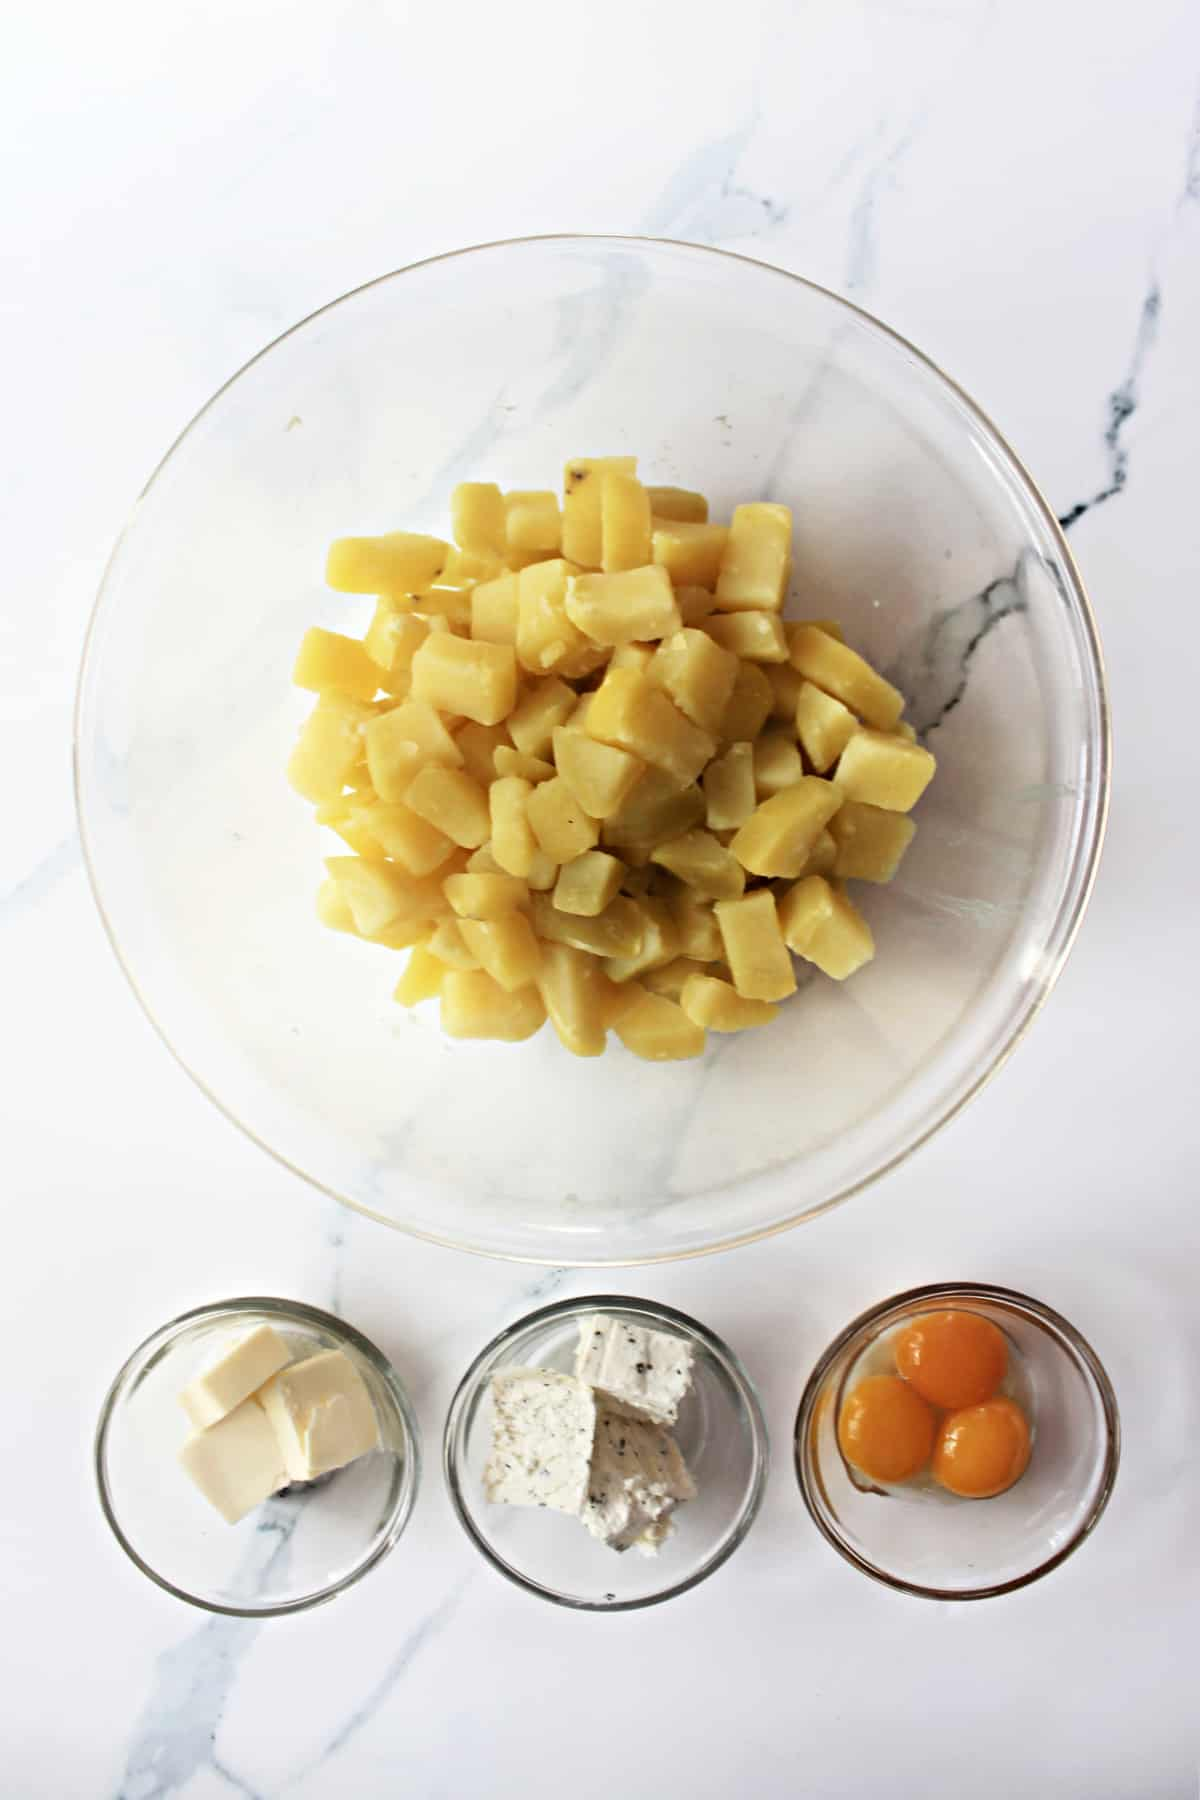 Overhead shot of ingredients for Duchess Potatoes -- cooked diced potatoes, egg yolks, Boursin cheese, and butter.